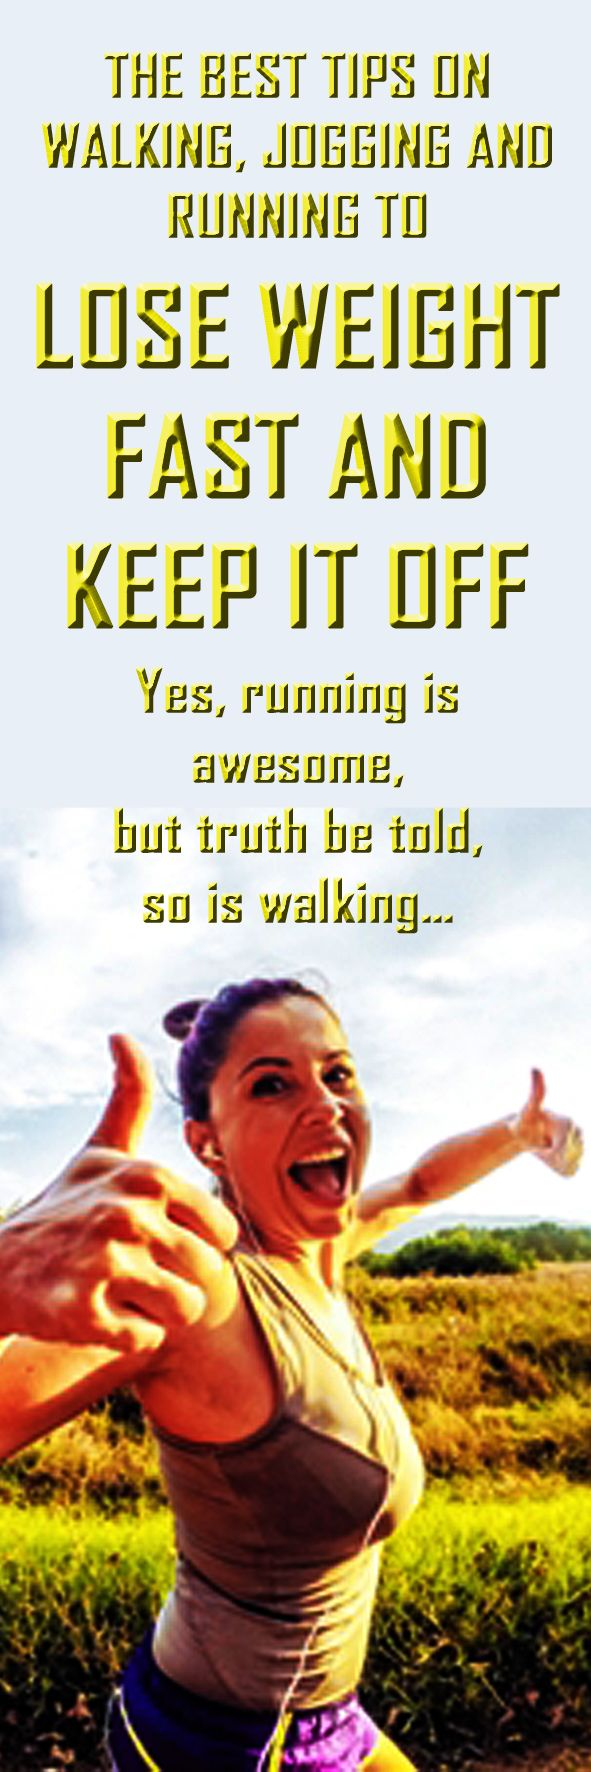 Running to Lose Weight - .The best tips on walking, jogging  running to lose weight fast and keep it… - Learn how to lose weight running